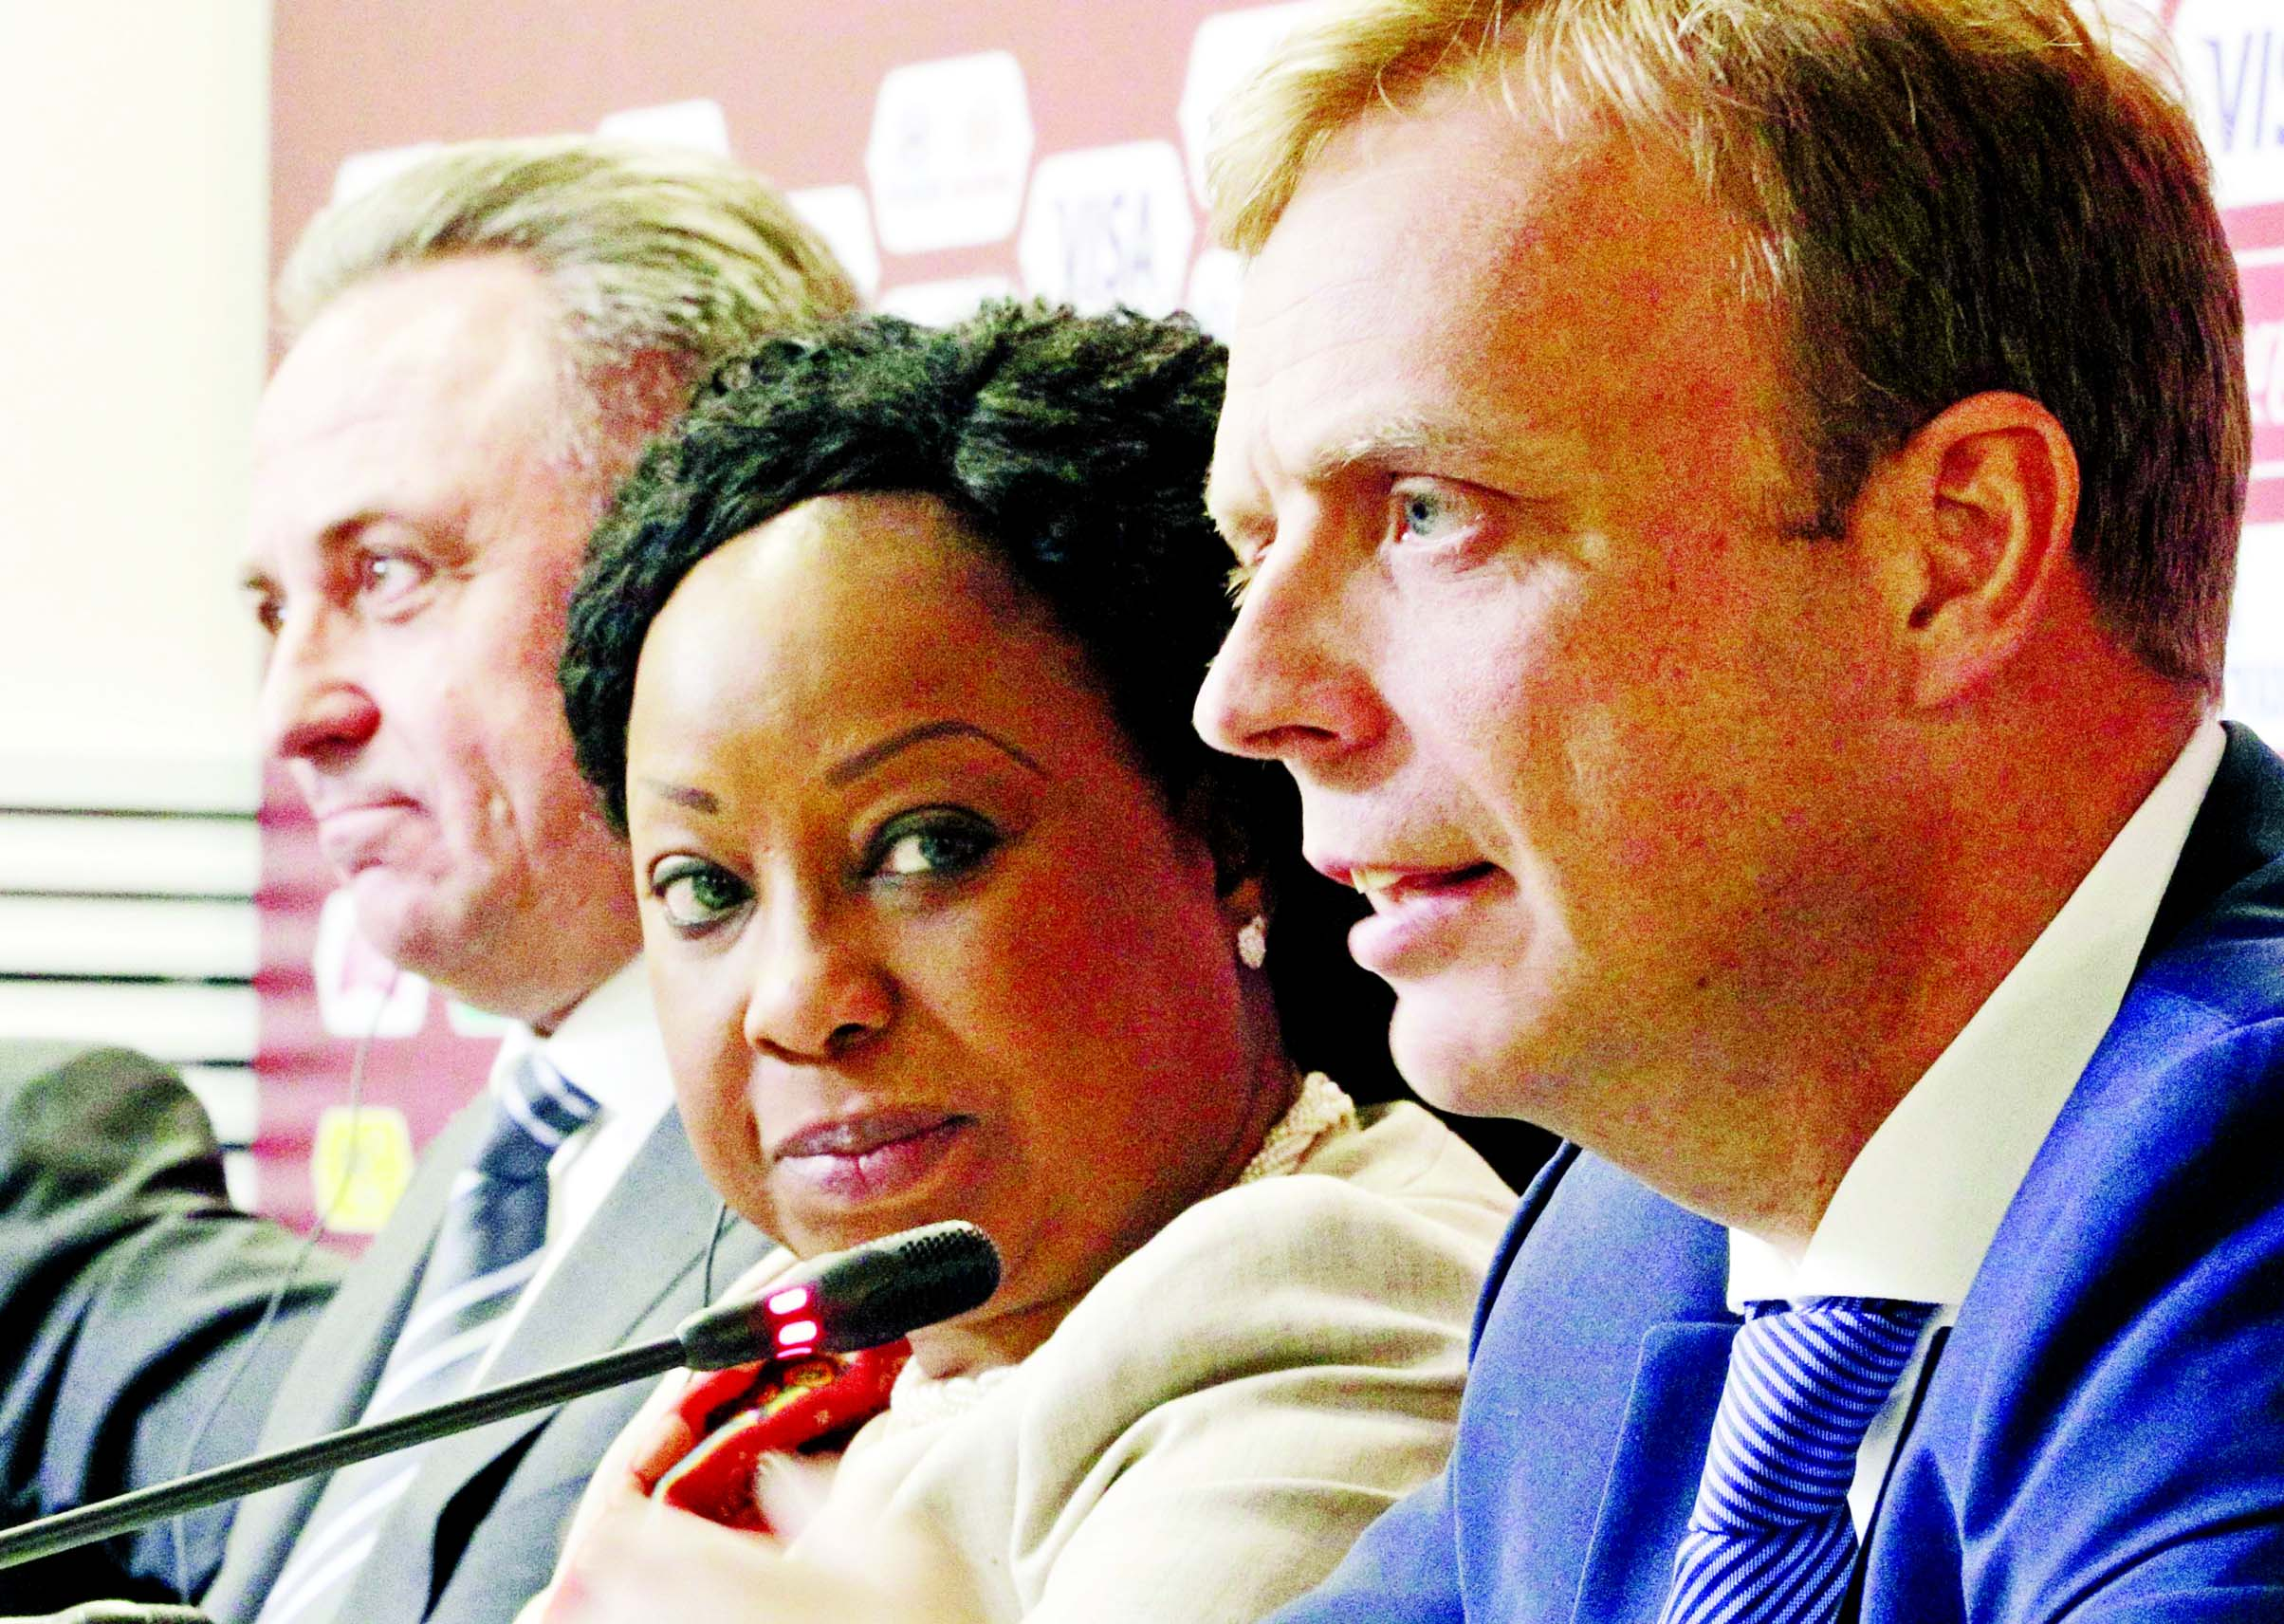 Colin Smith, FIFA`s Competitions Director (right) FIFA Secretary General Fatma Samoura (centre) and Vitaly Mutko, Russia's deputy prime minister in charge of sport, tourism and youth policies, attend a news conference after the Russia 2018 LOC Board meeting with FIFA participation in St.Petersburg, Russia on Tuesday.